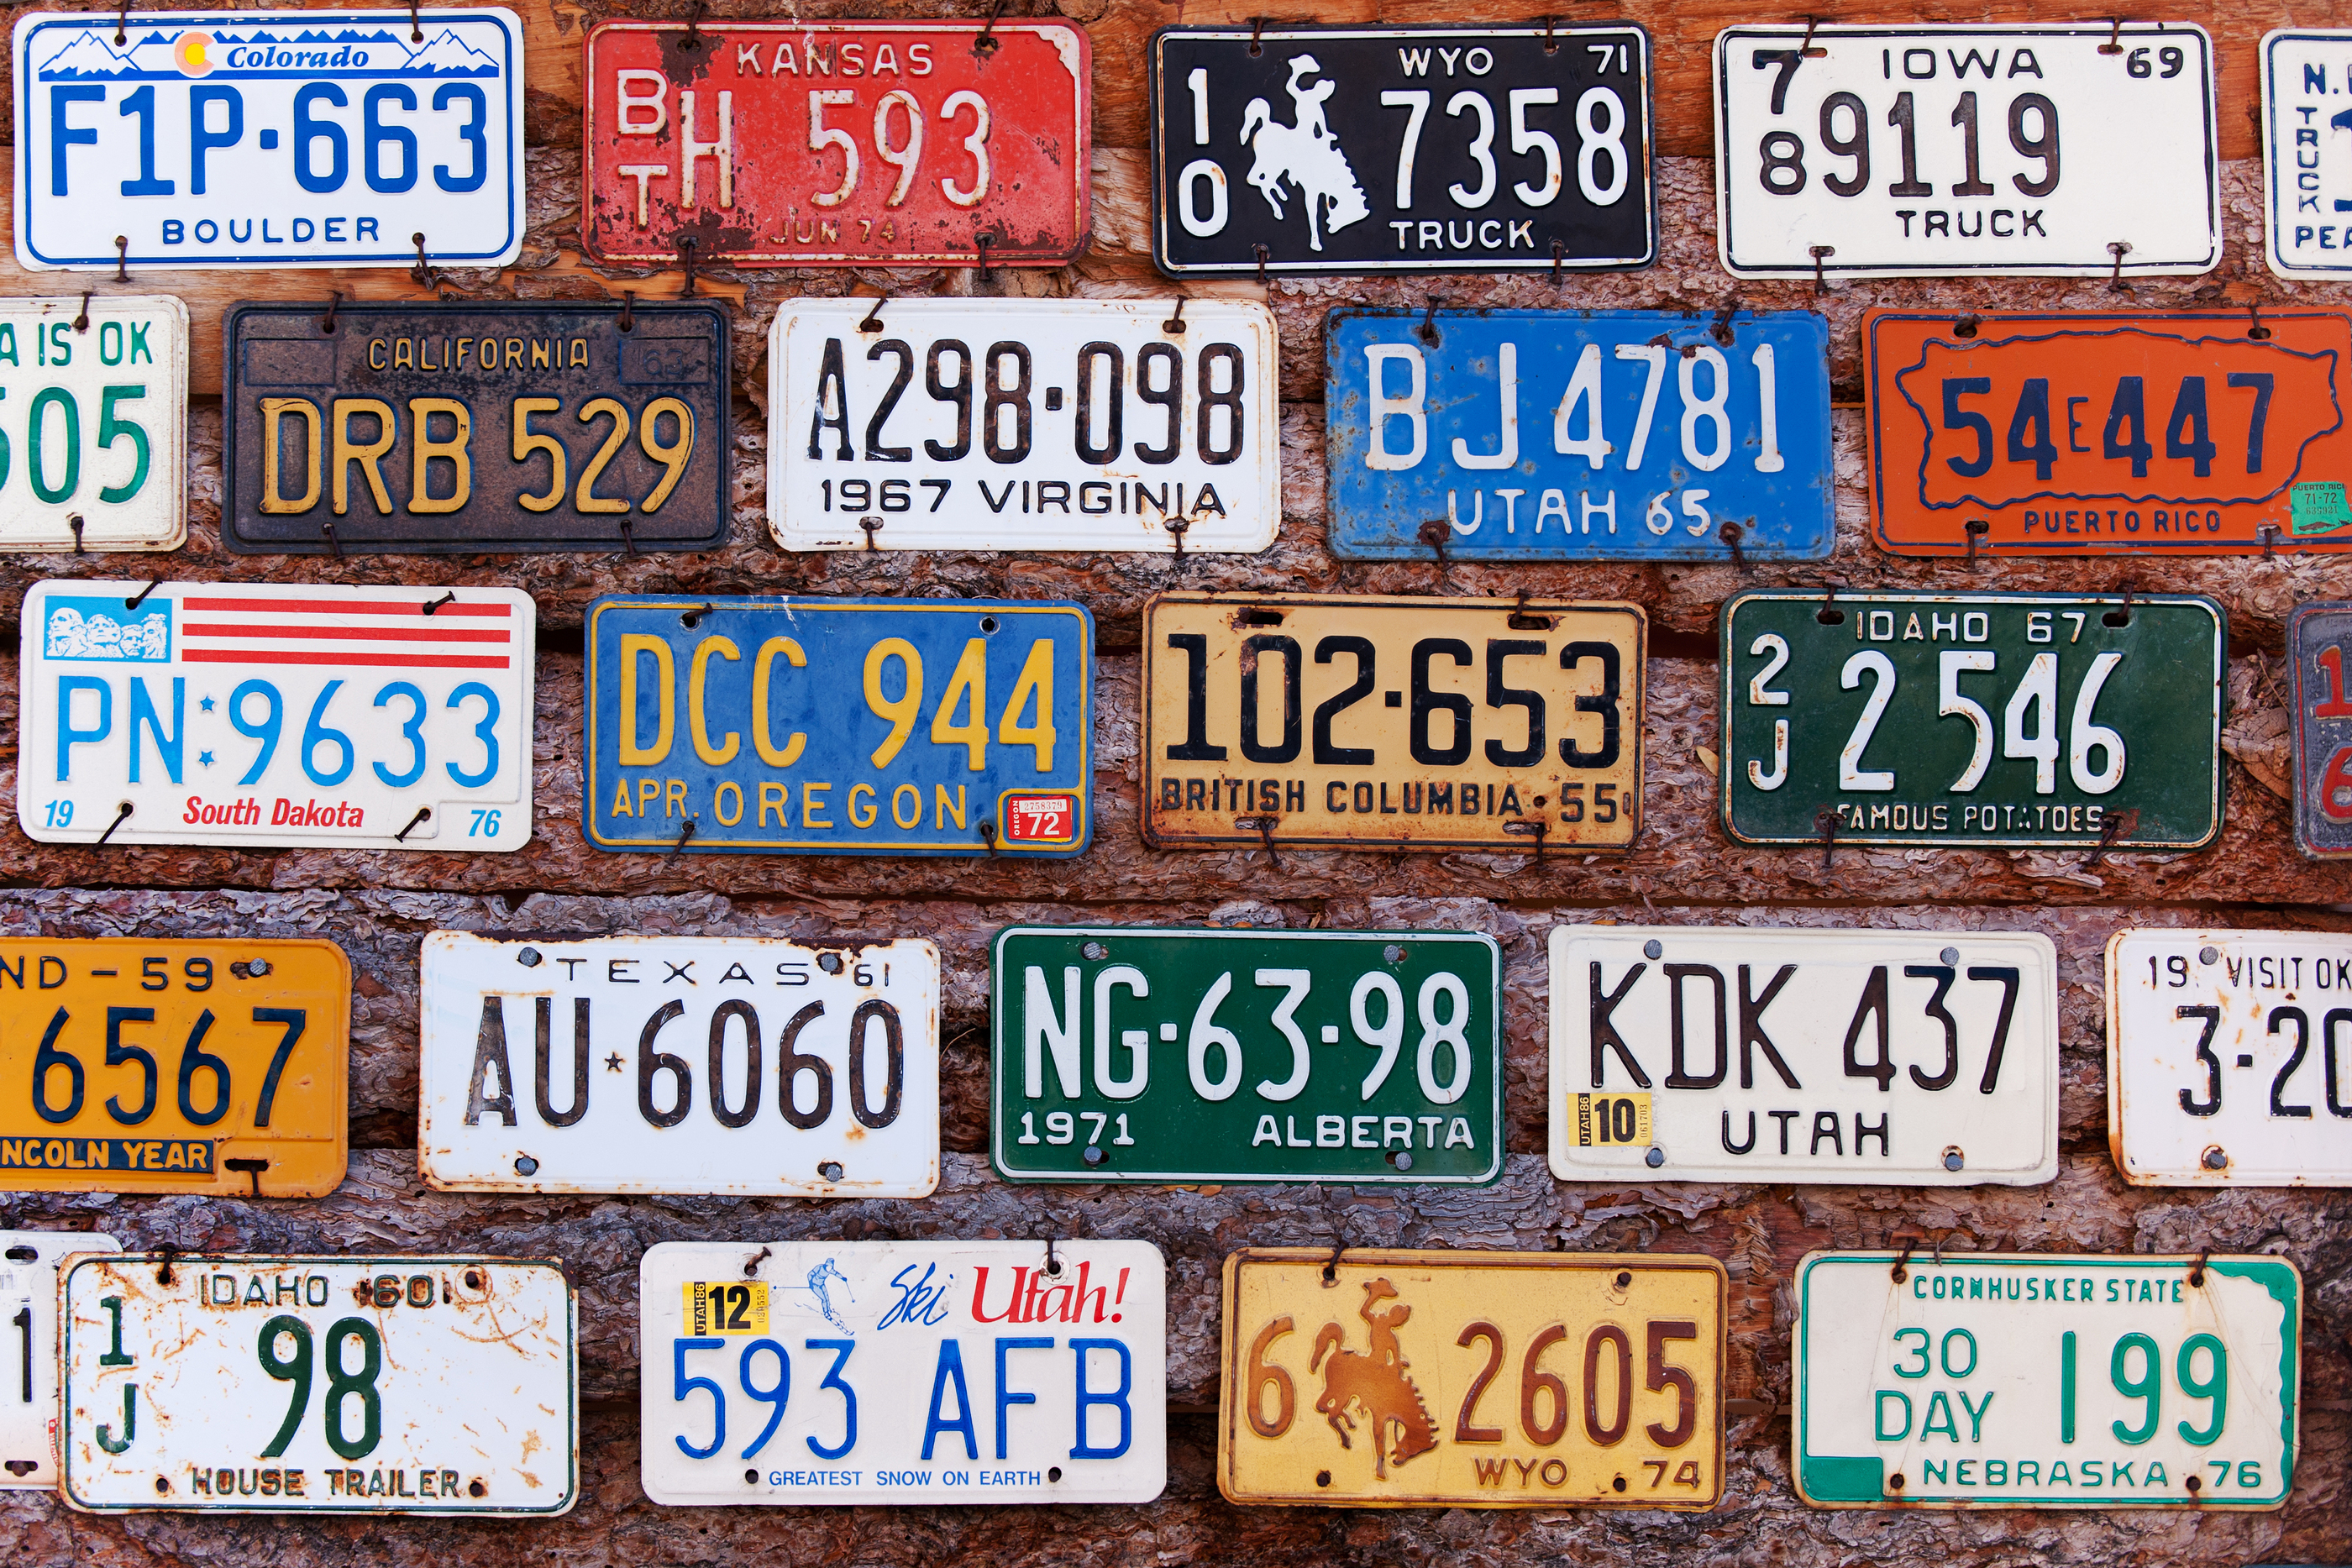 Wisconsin getting creative on license plate combinations - Wisconsin ...